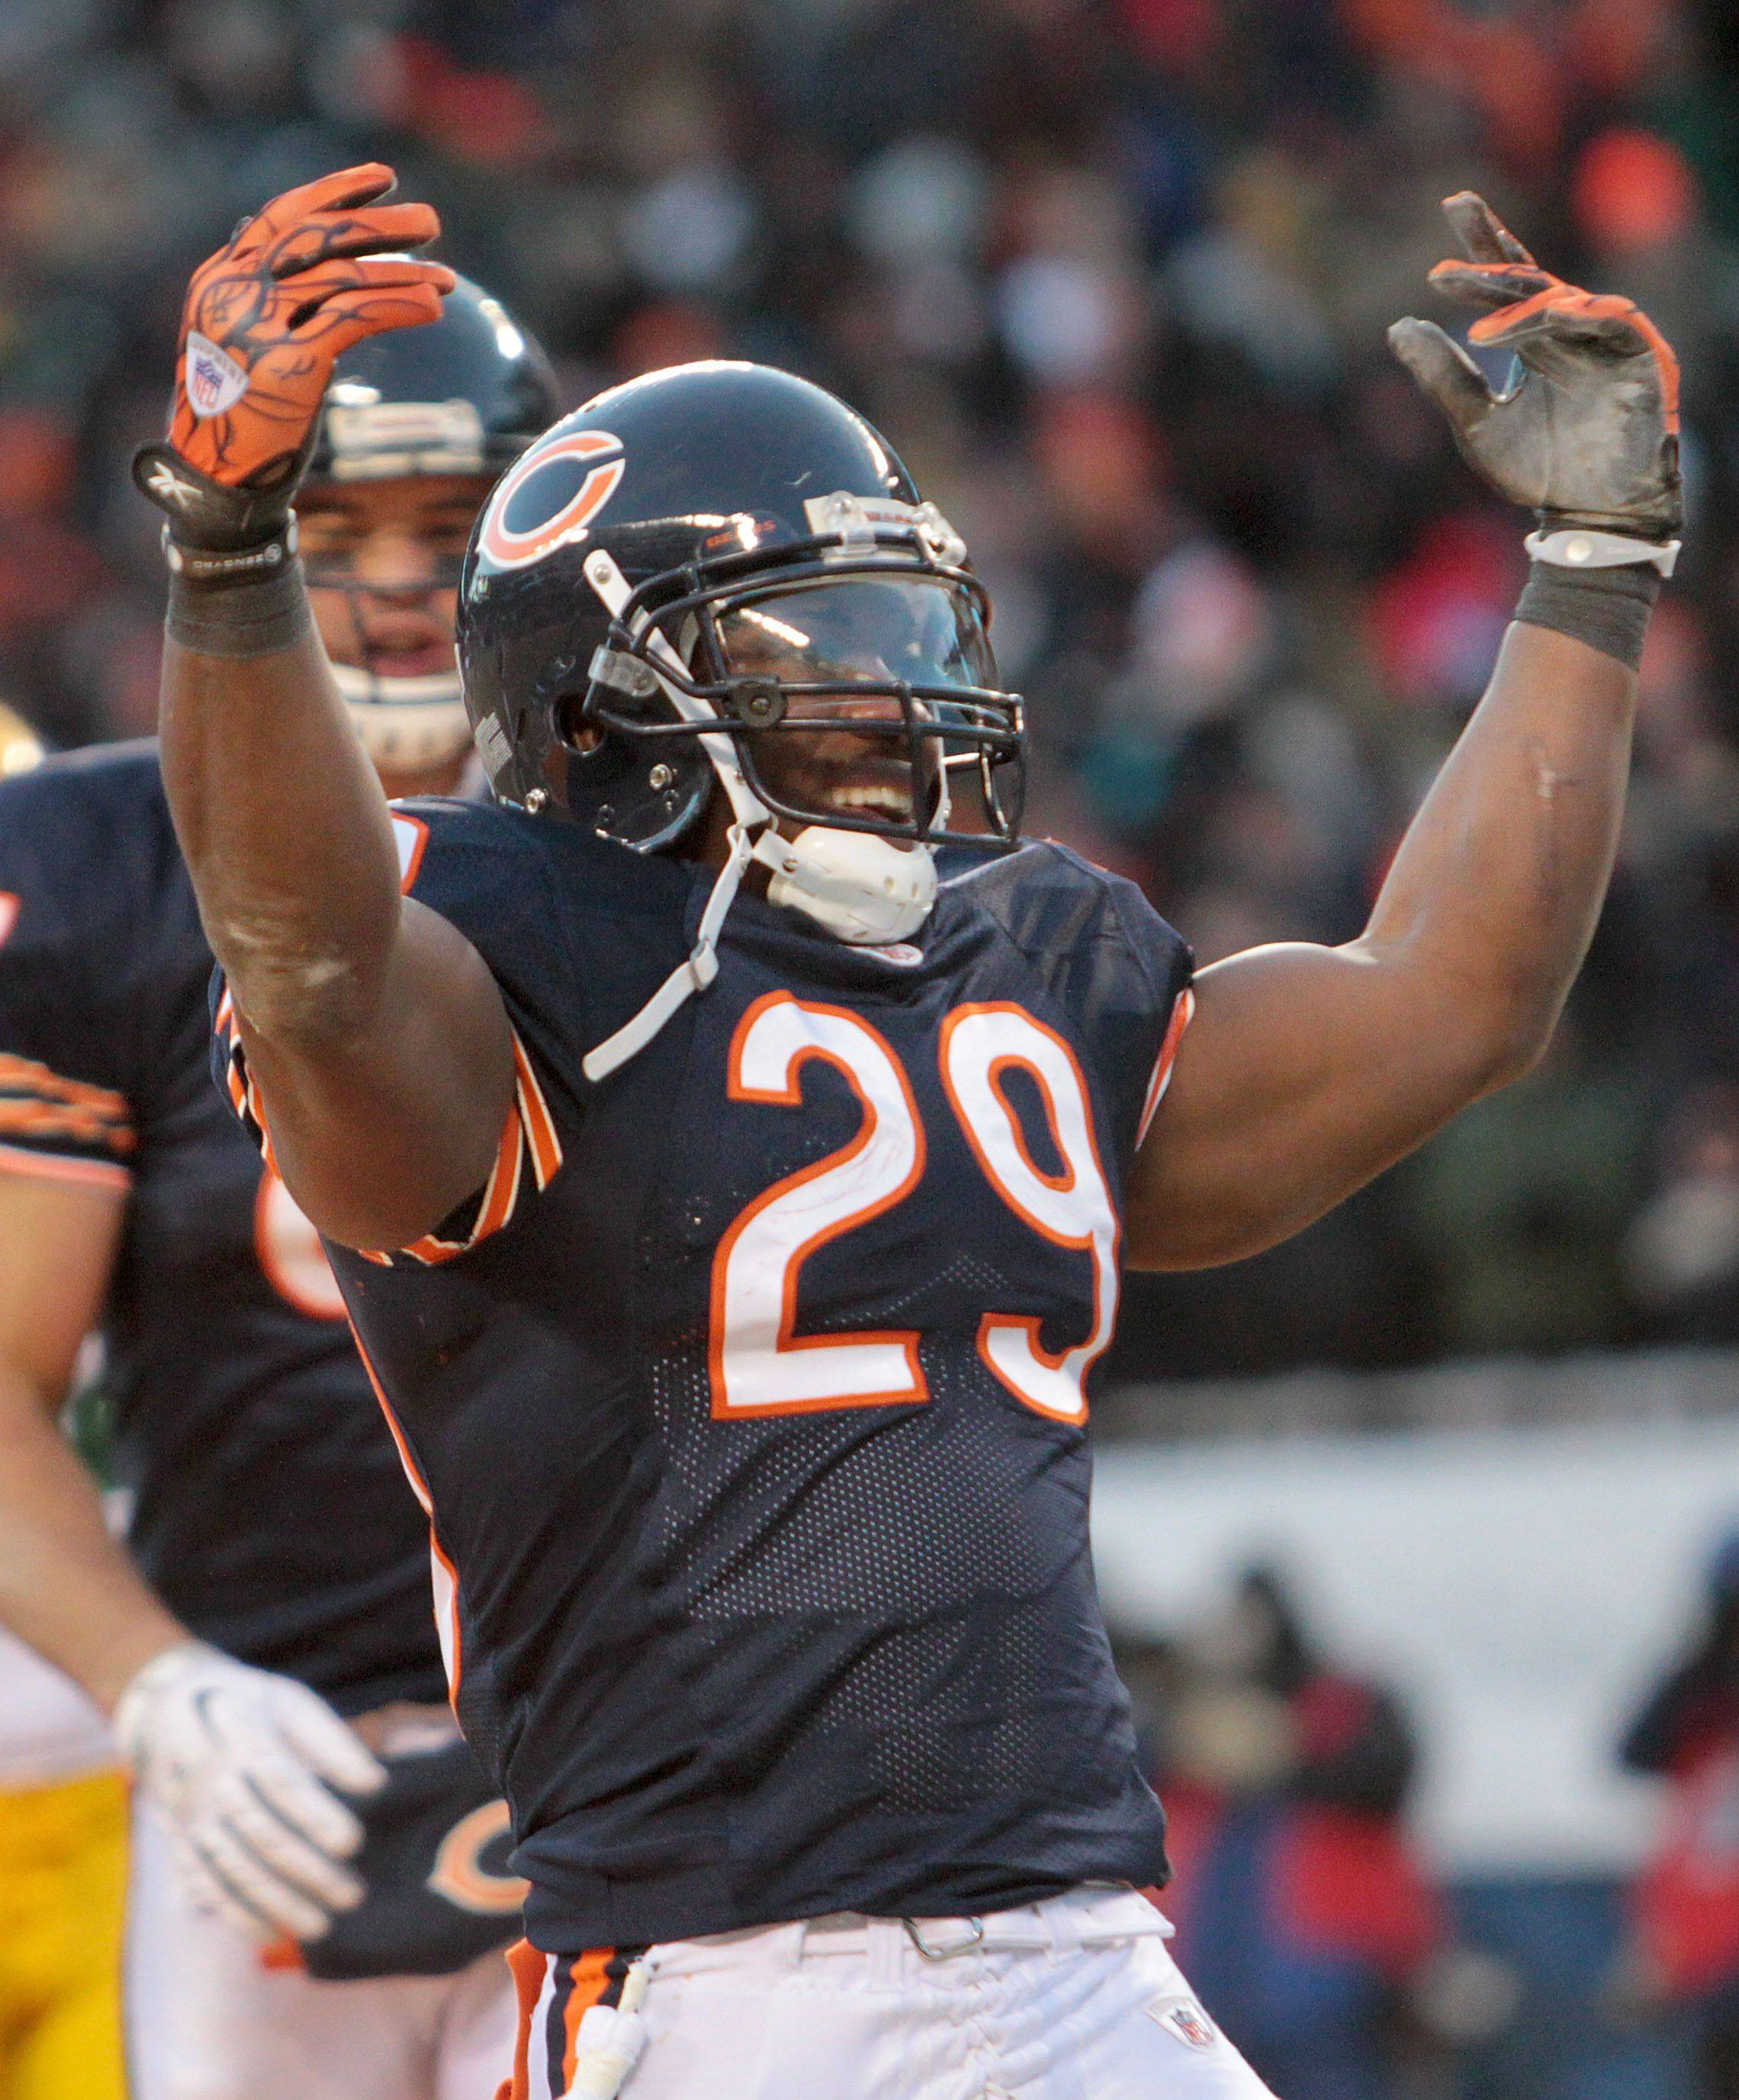 After scoring only 3 touchdowns last season and averaging just 2.4 yards per rushing attempt, Chester Taylor is expected to be released by the Bears.